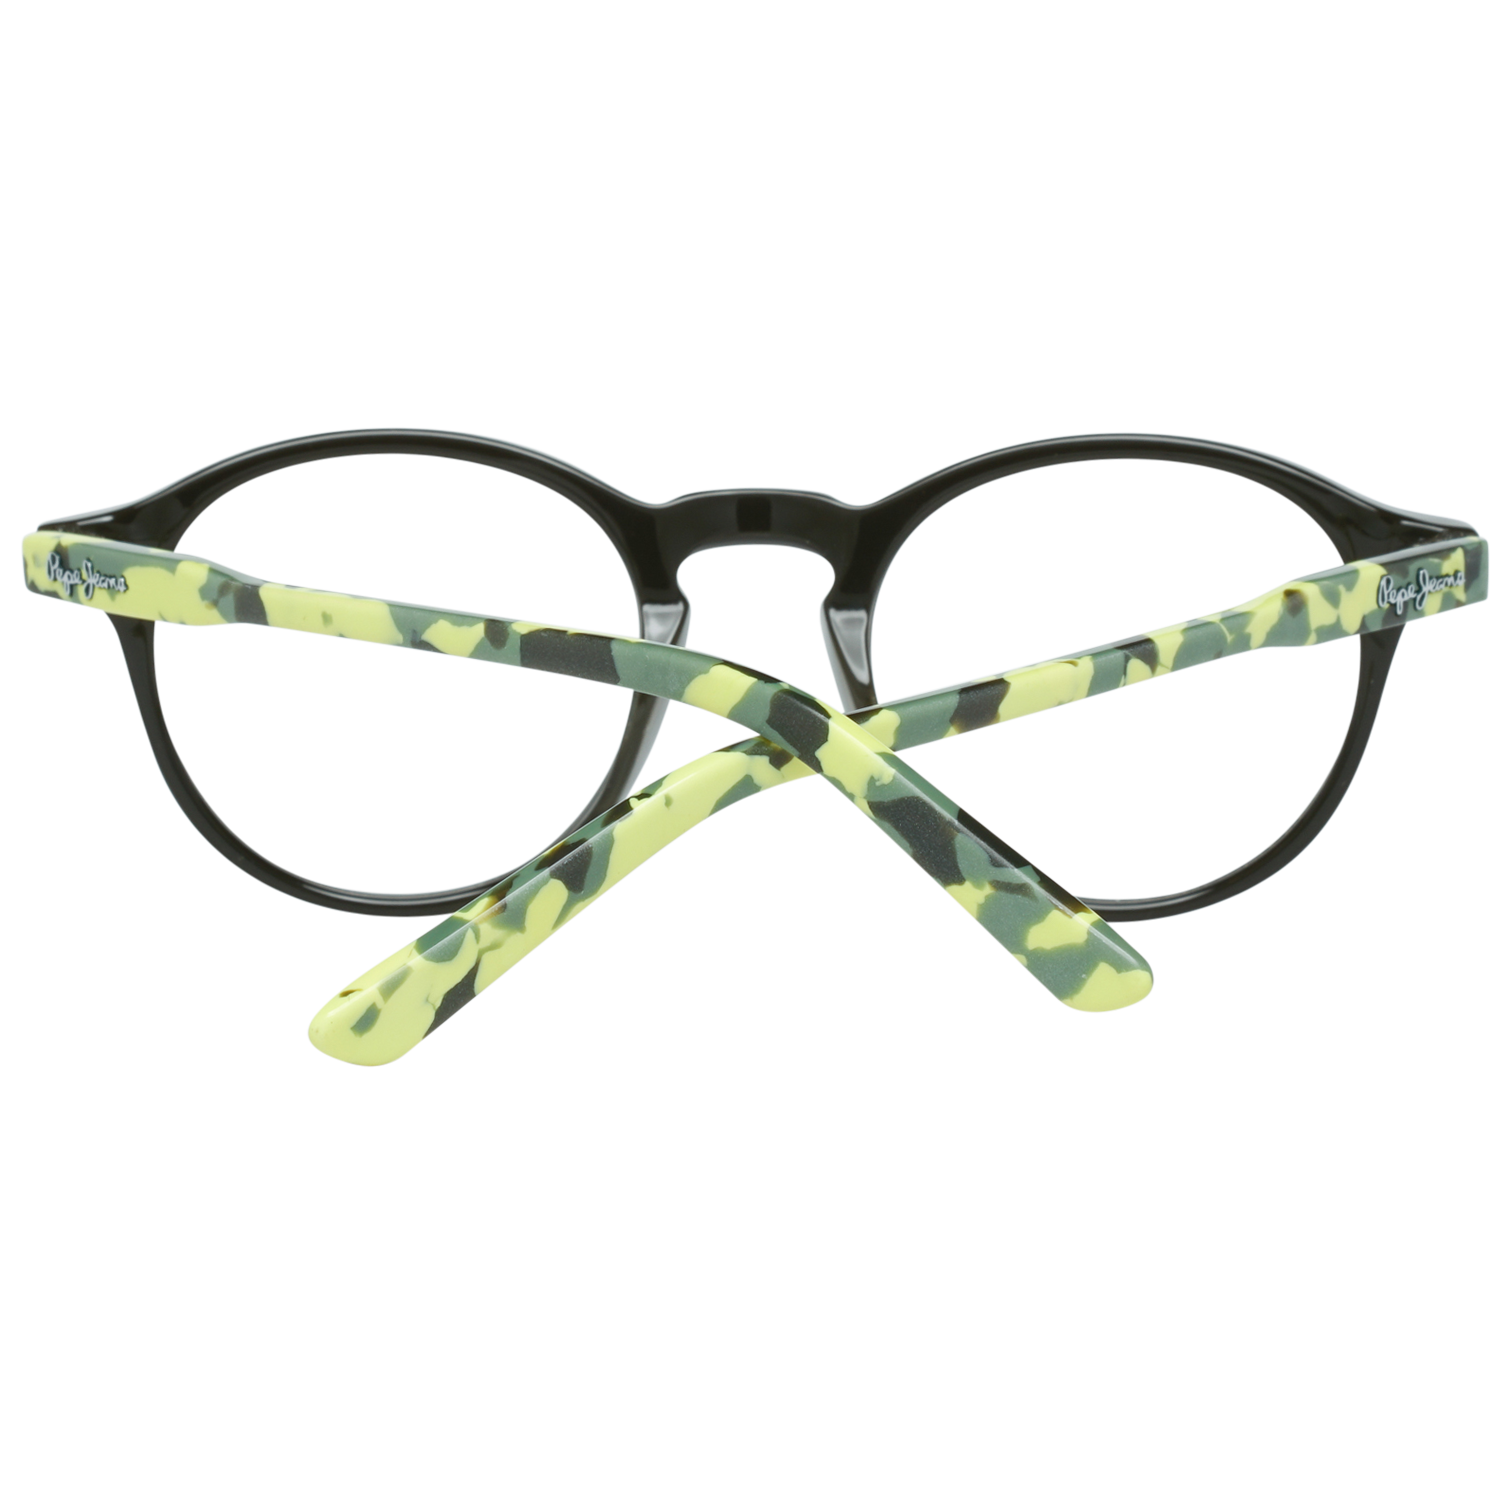 Pepe Jeans Optical Frame PJ3223 C4 49 Lyndon Women Green